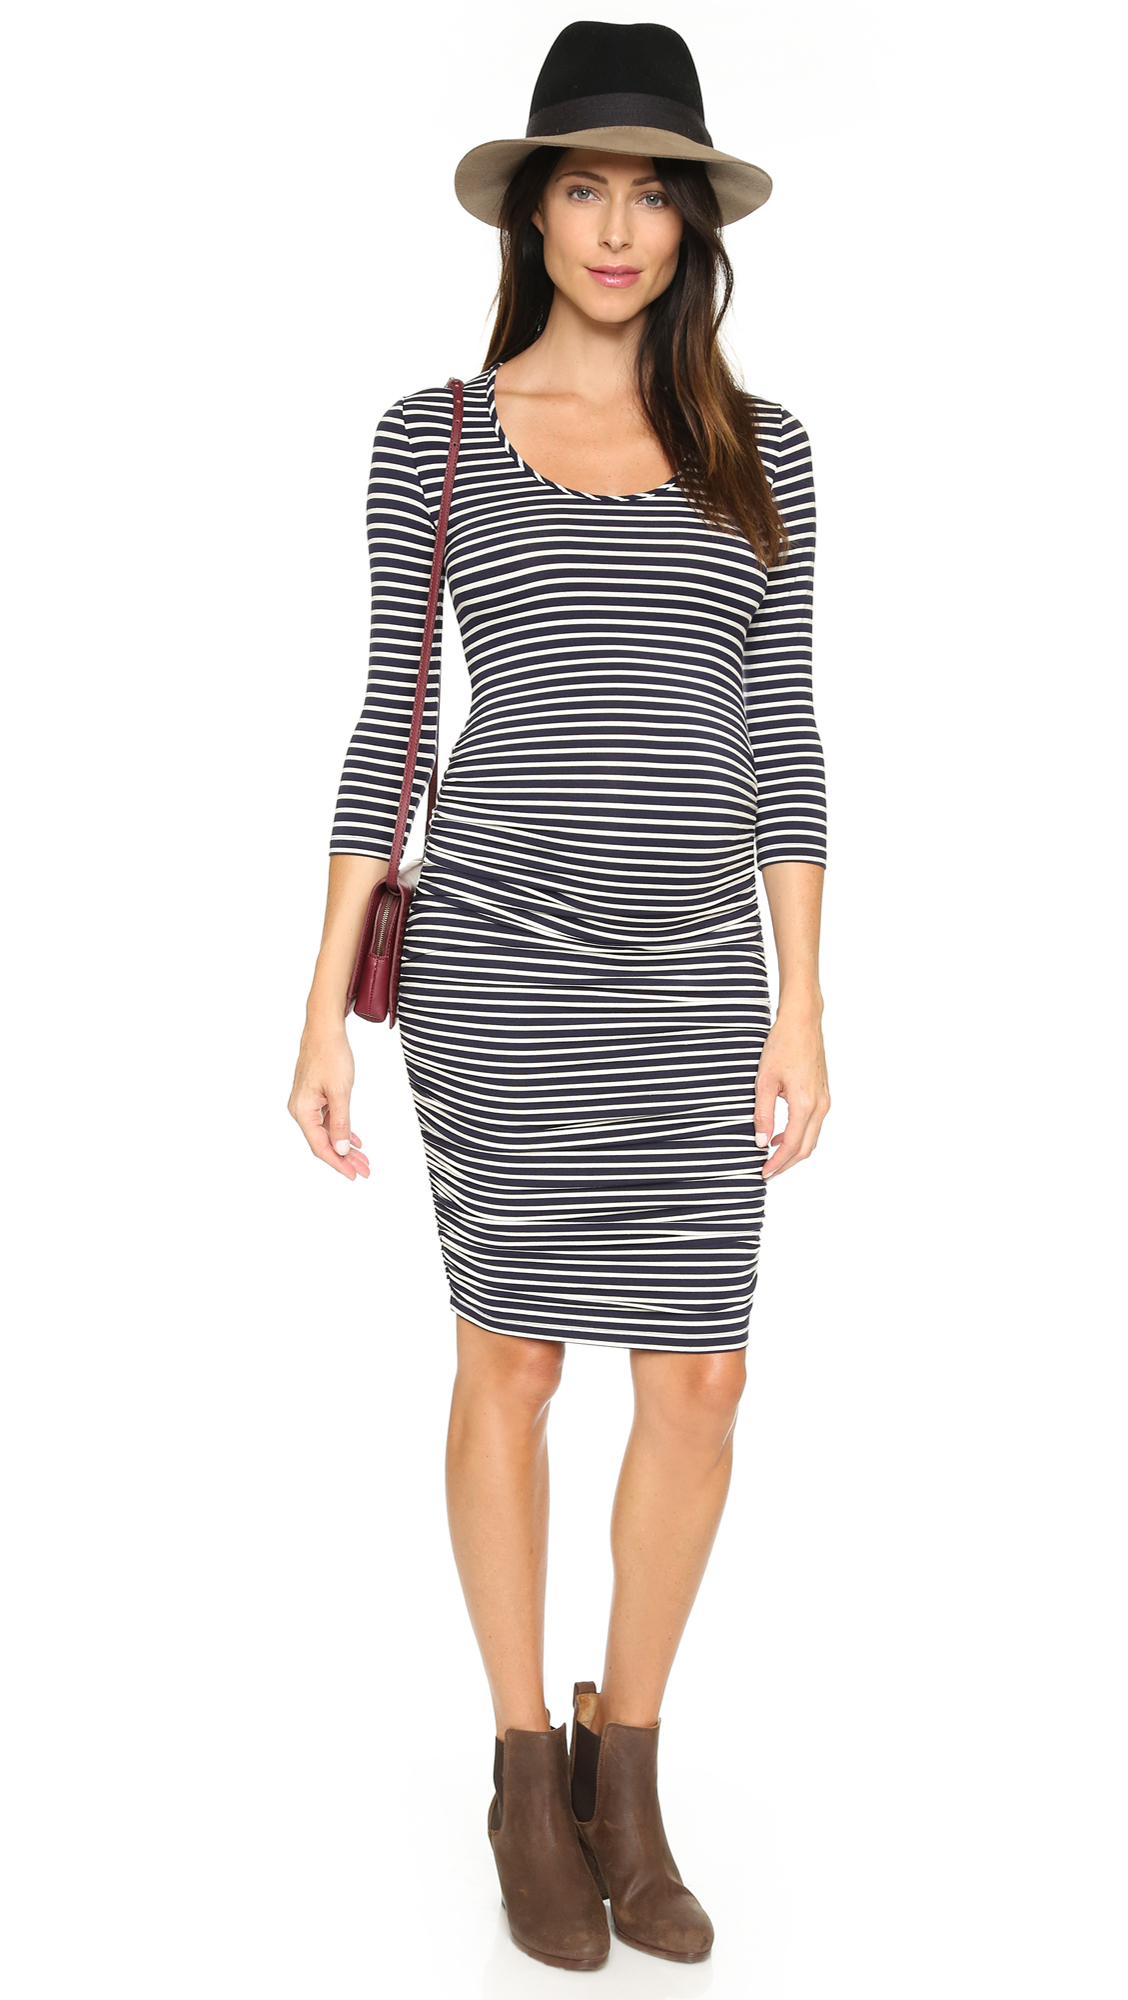 Ingrid isabel striped maternity dress shopbop ombrellifo Image collections